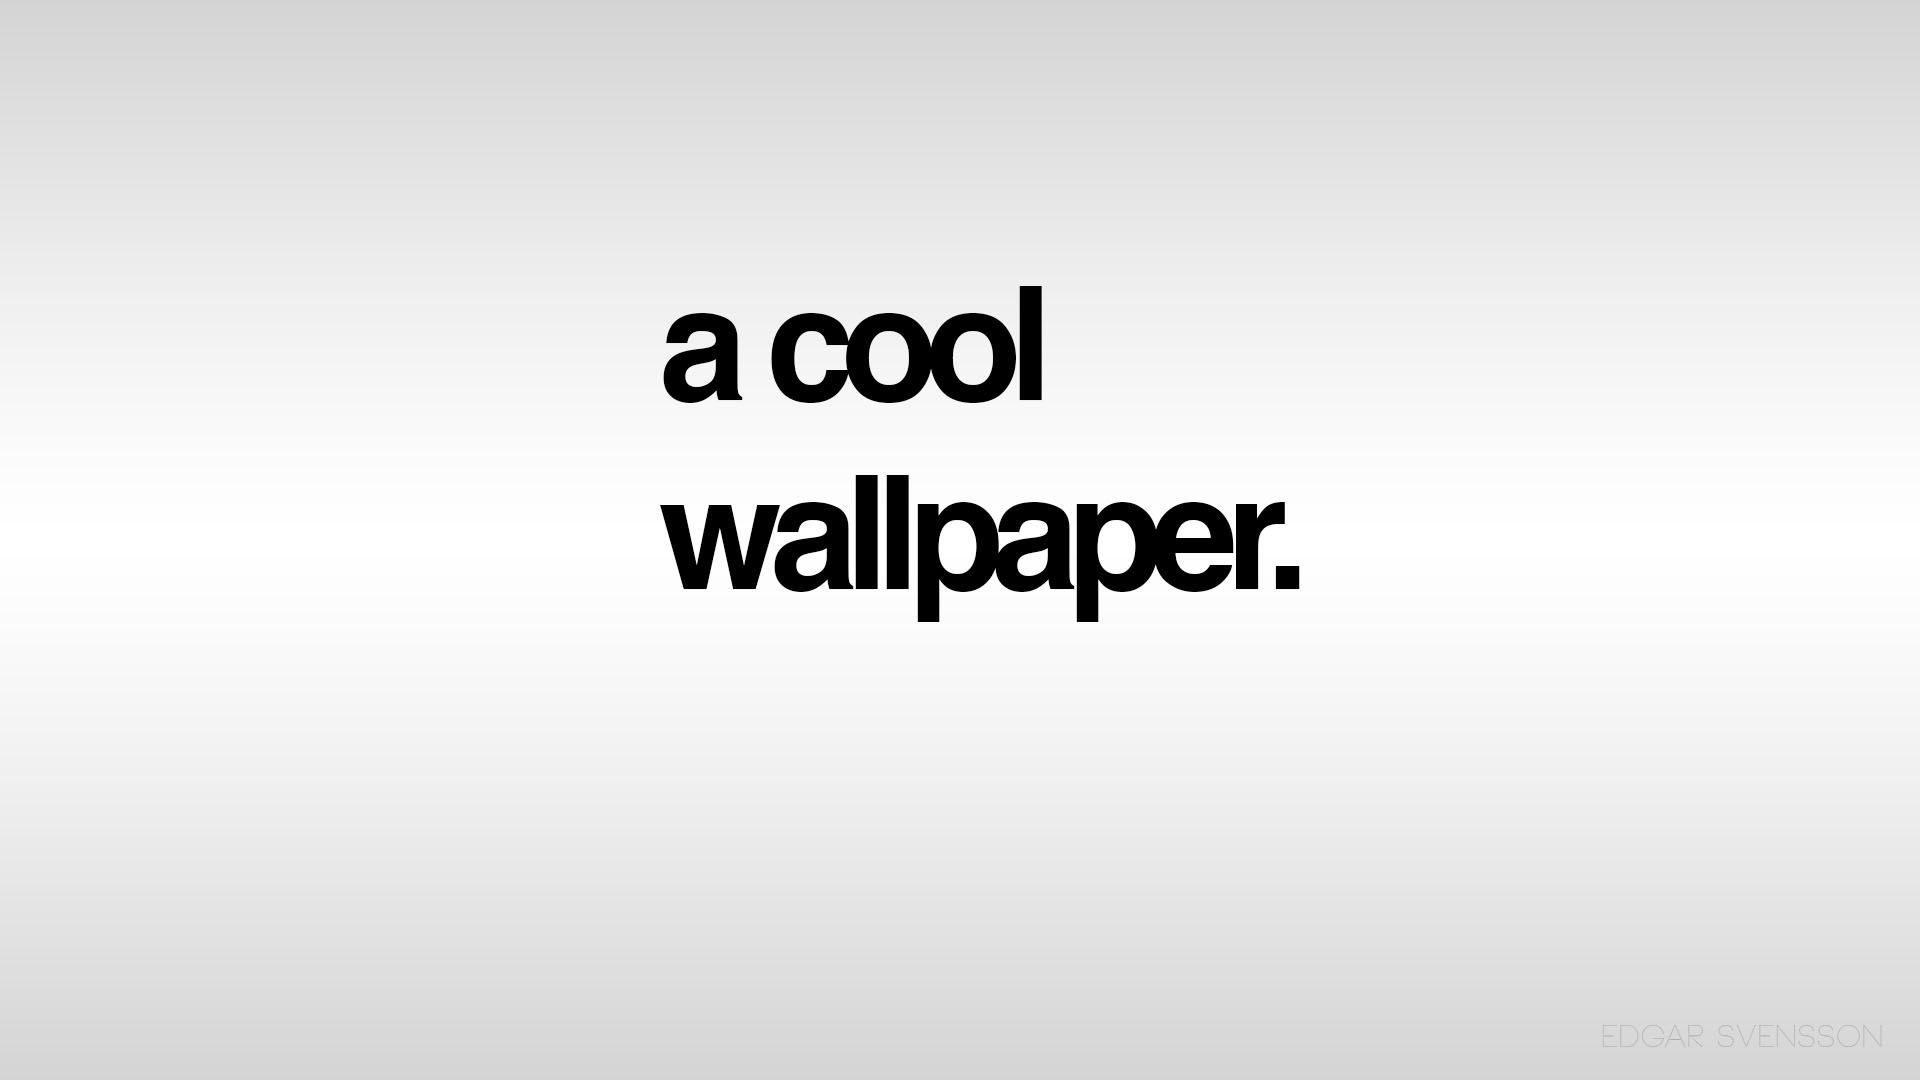 cool, wallpaper, art, edgarsvensson